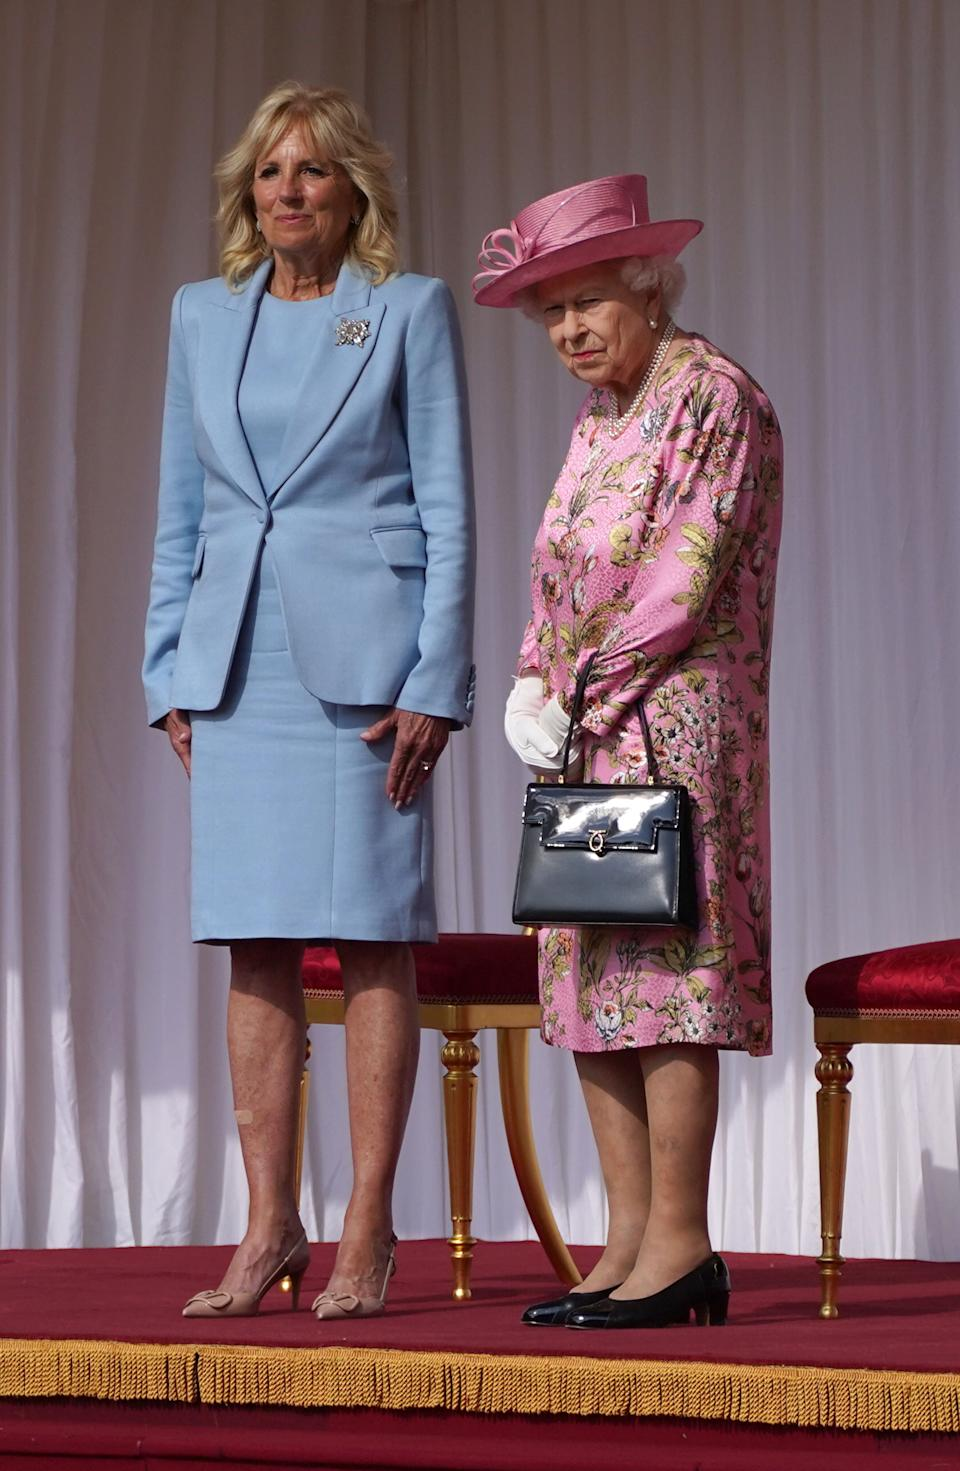 Queen Elizabeth II (right) with First Lady Jill Biden during her visit to Windsor Castle in Berkshire. Picture date: Sunday June 13, 2021.